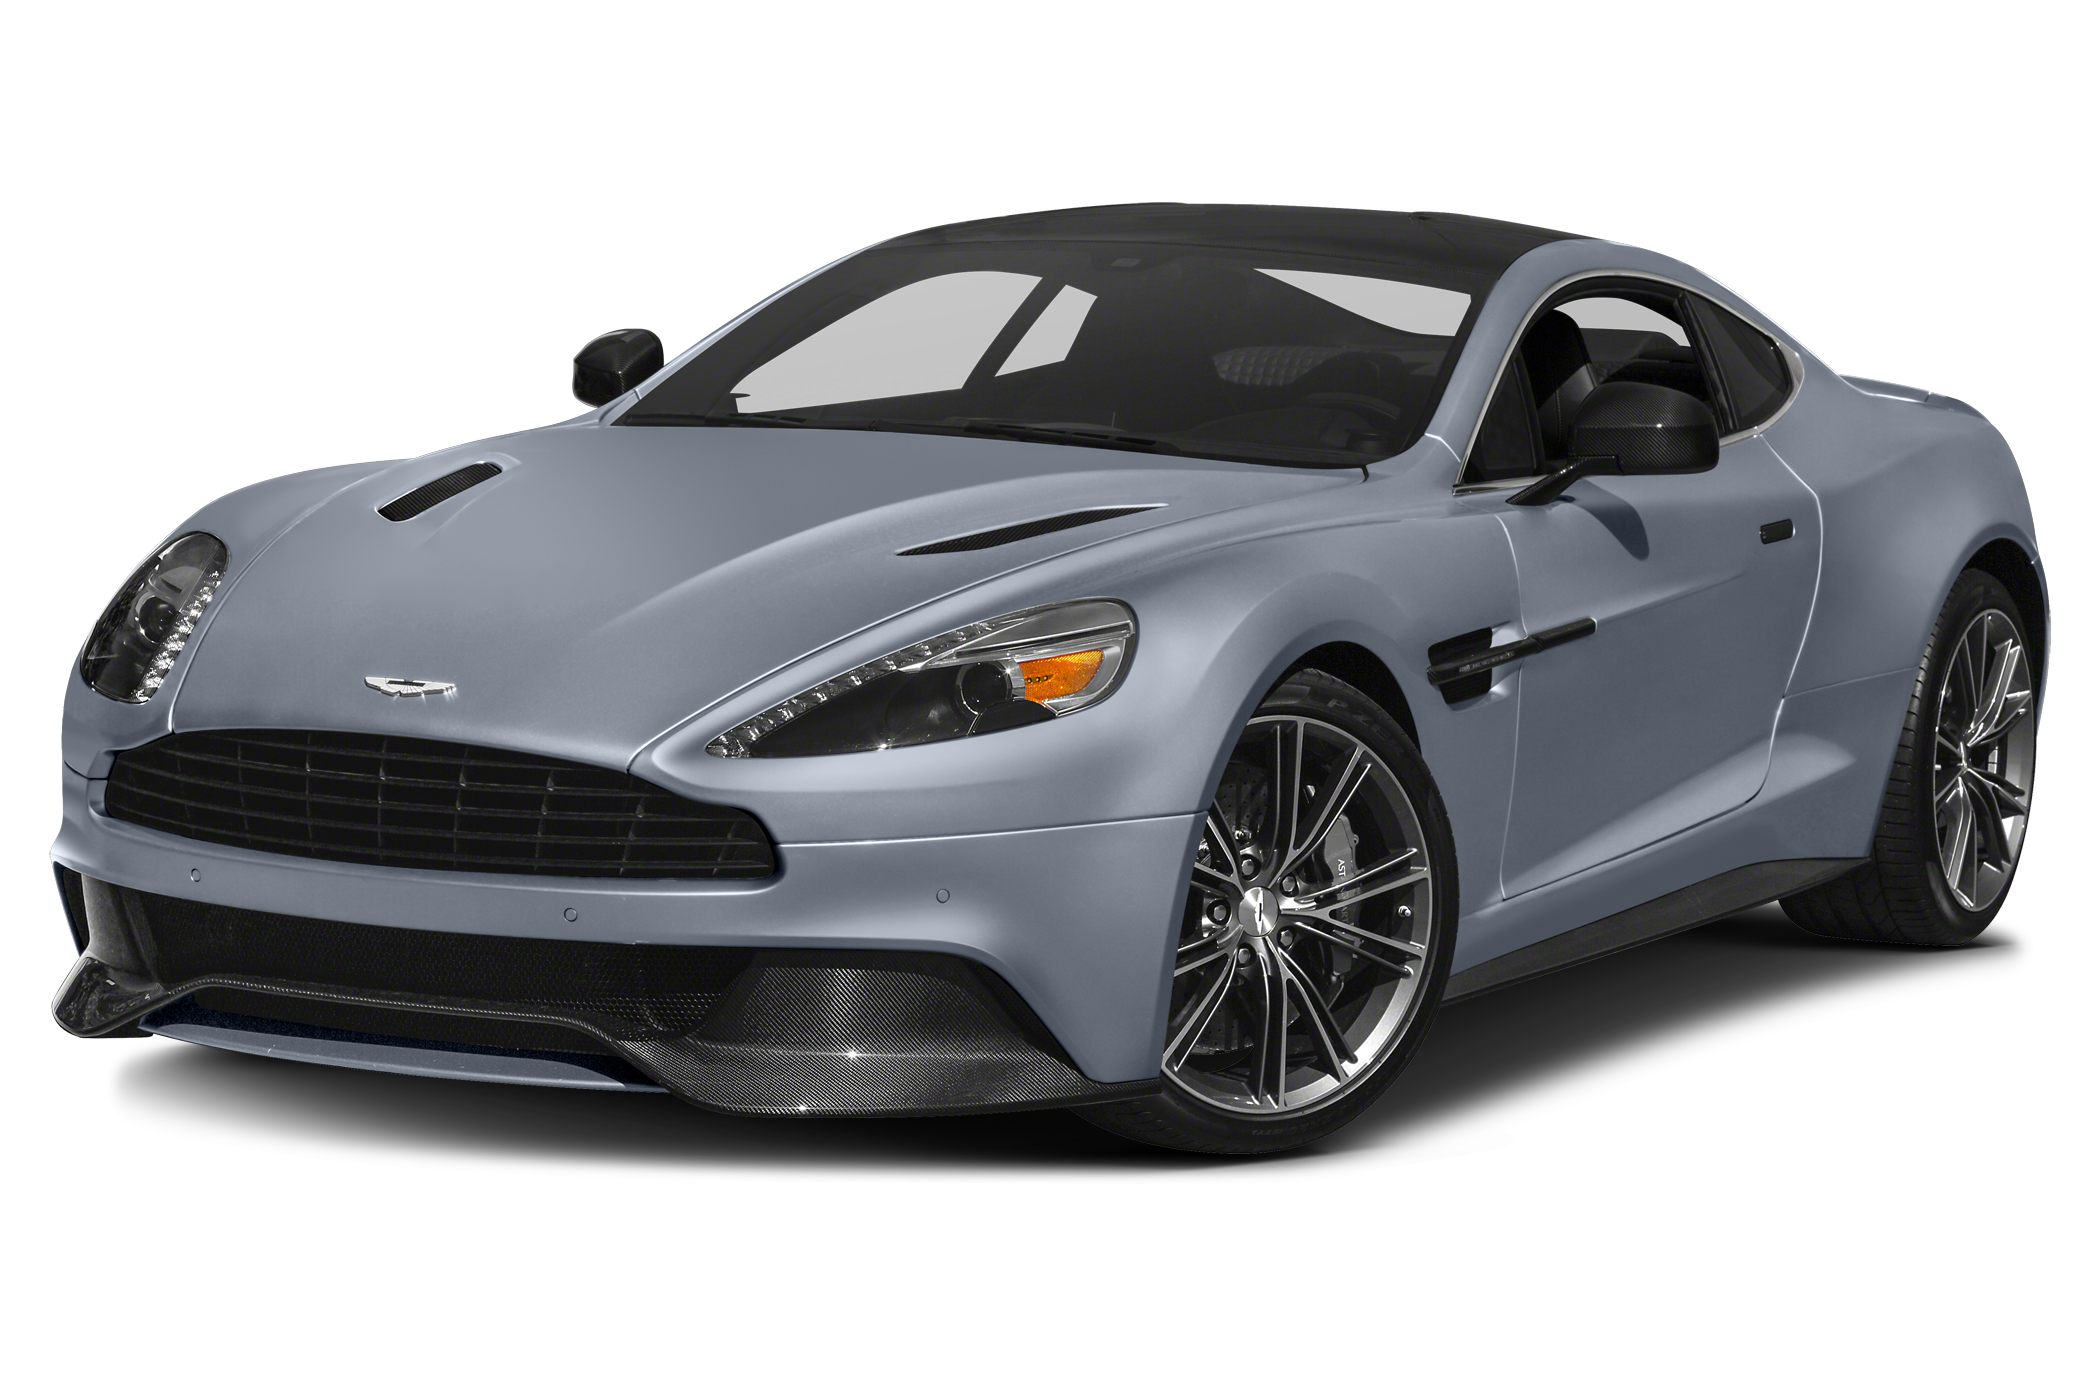 Aston Martin Vanquish Volante Neiman Marcus makes holiday shopping easy, expensive